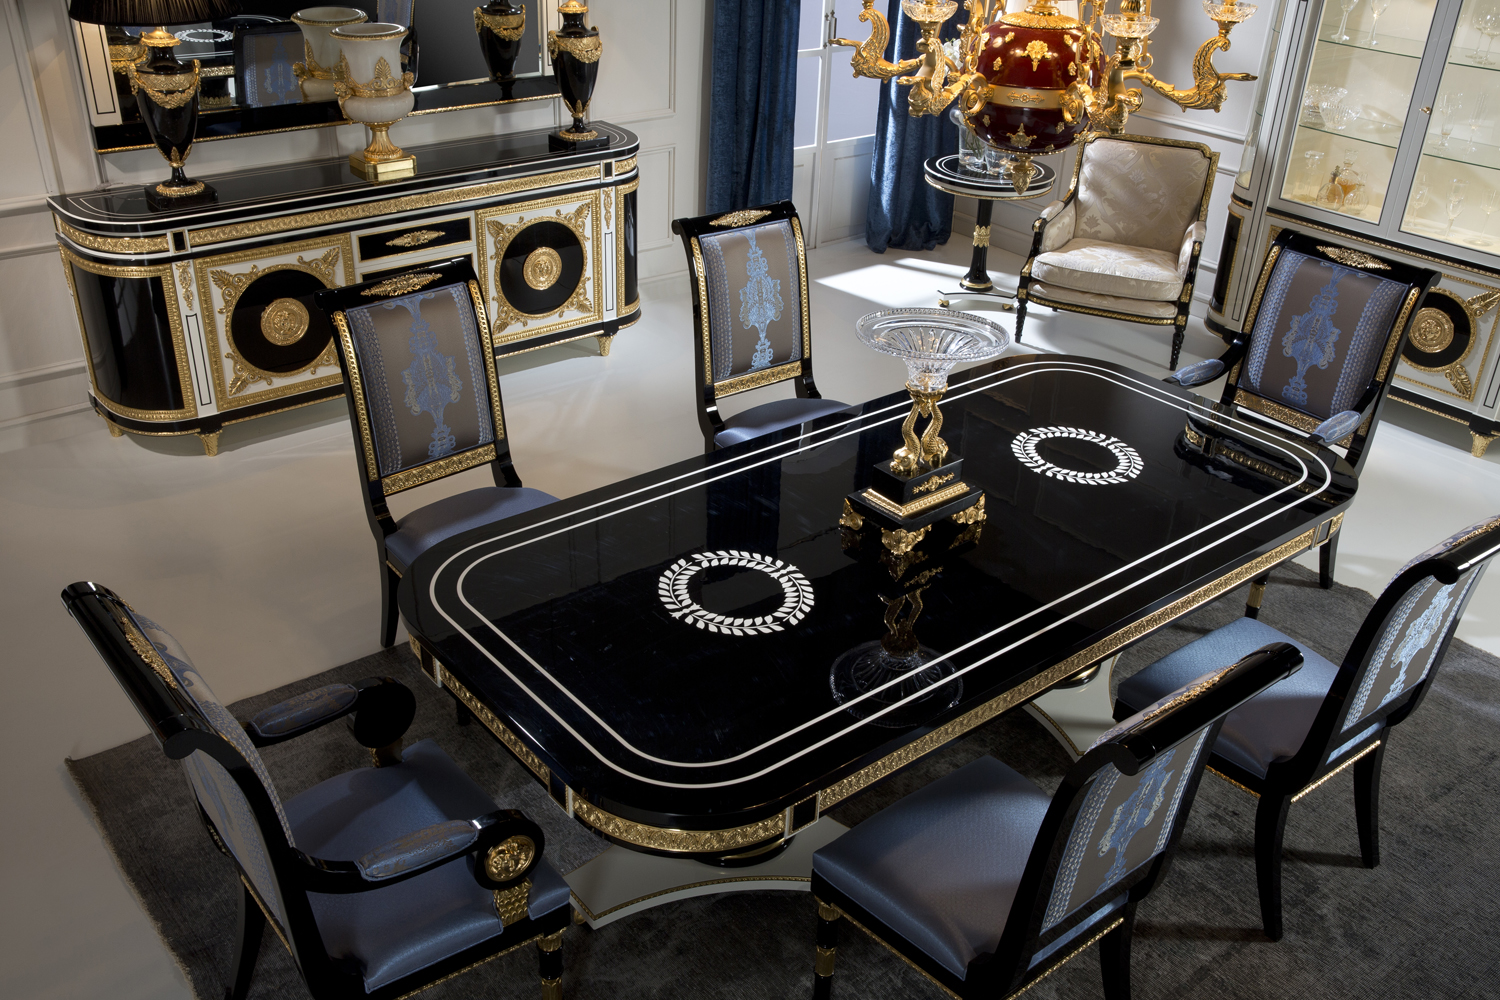 Luxury Dining Sets, High end dining table sets, luxury dining room furniture